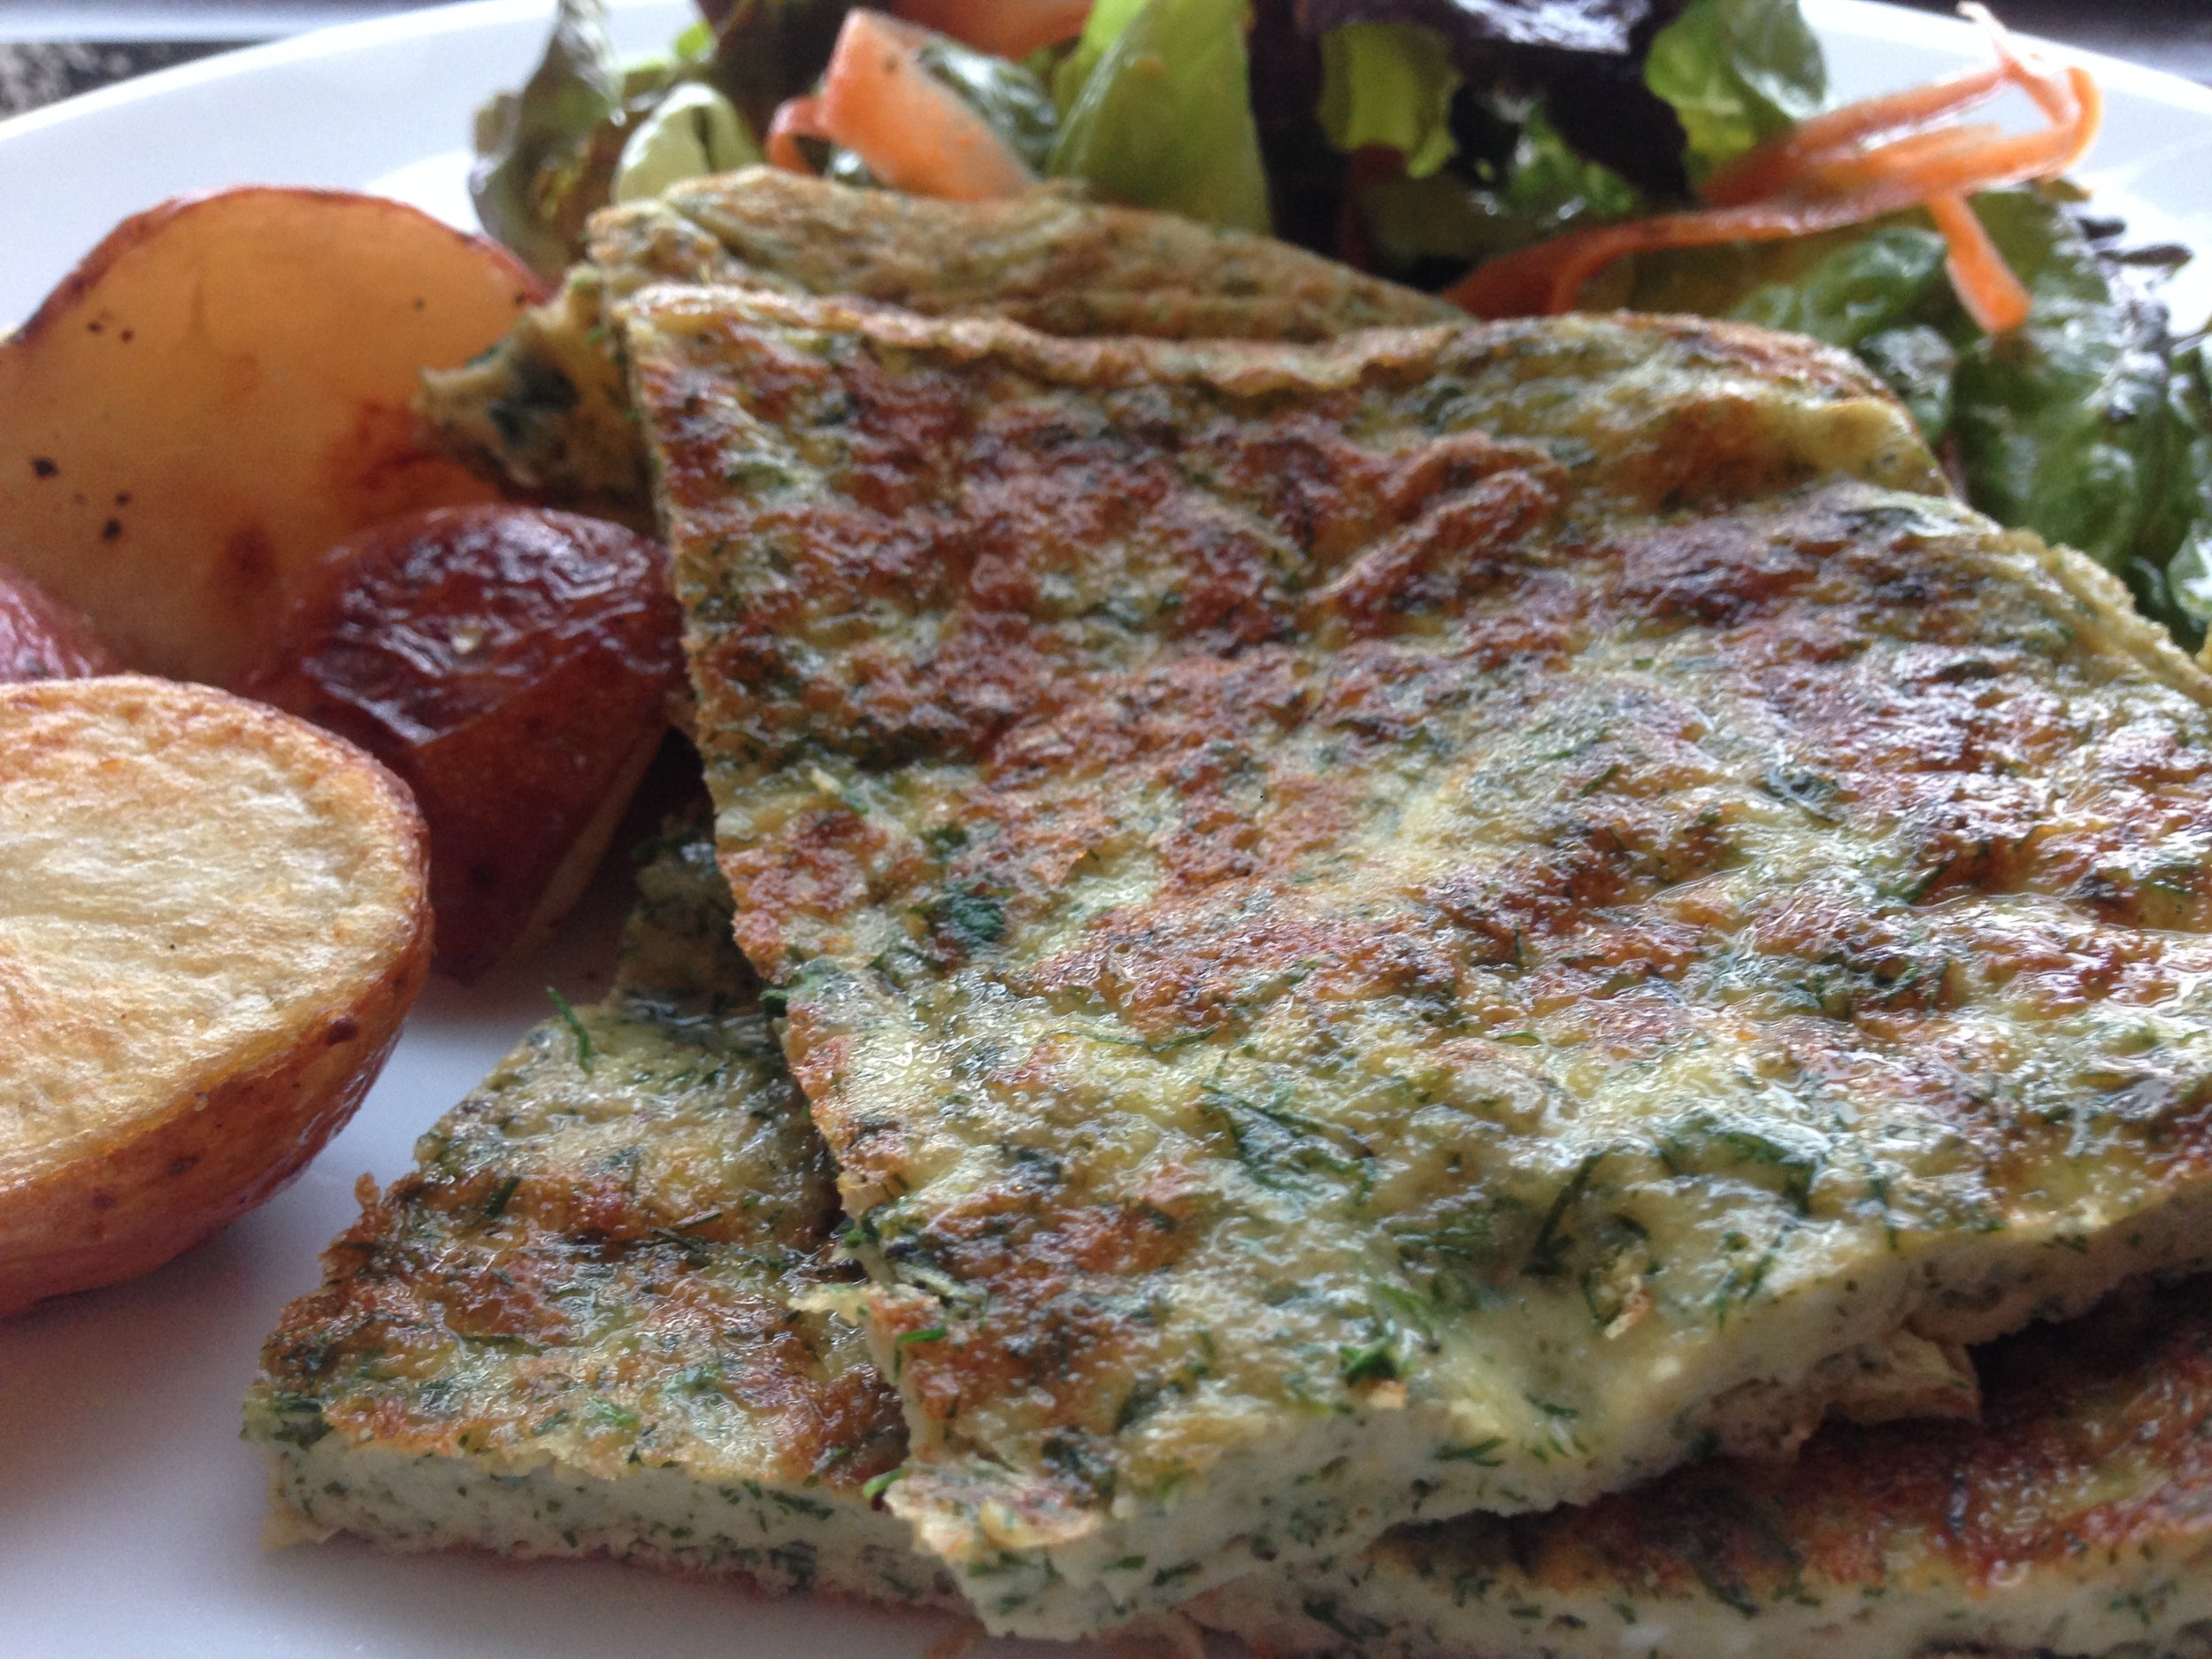 Fresh Herb Omelette, ready to eat.